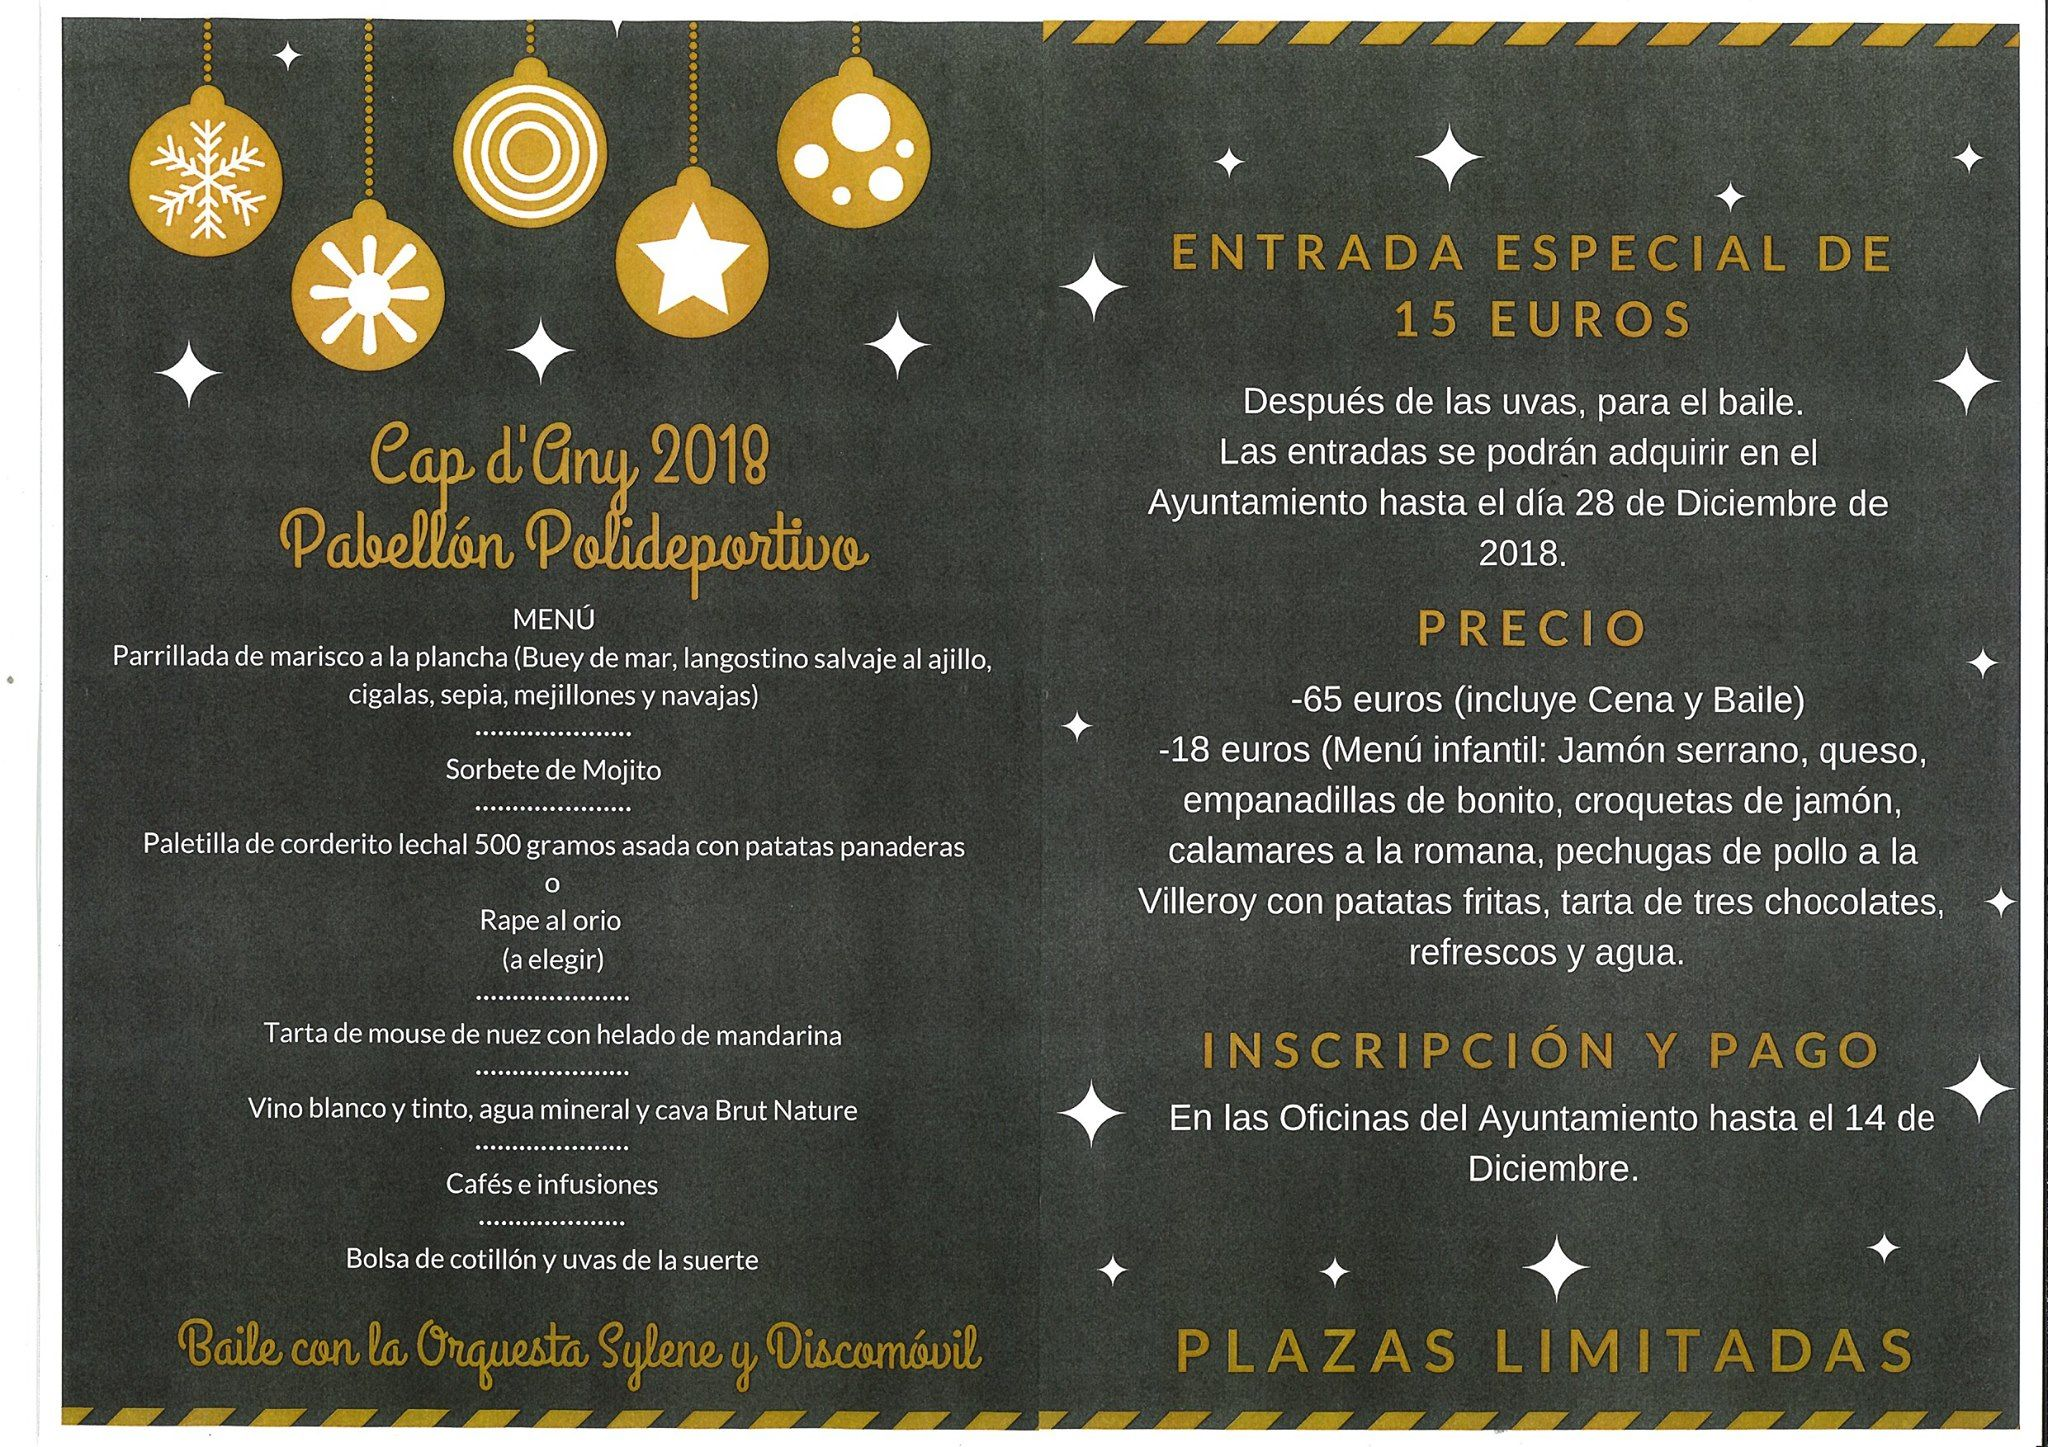 CAP D'ANY 2018 Pabellón Polideportivo